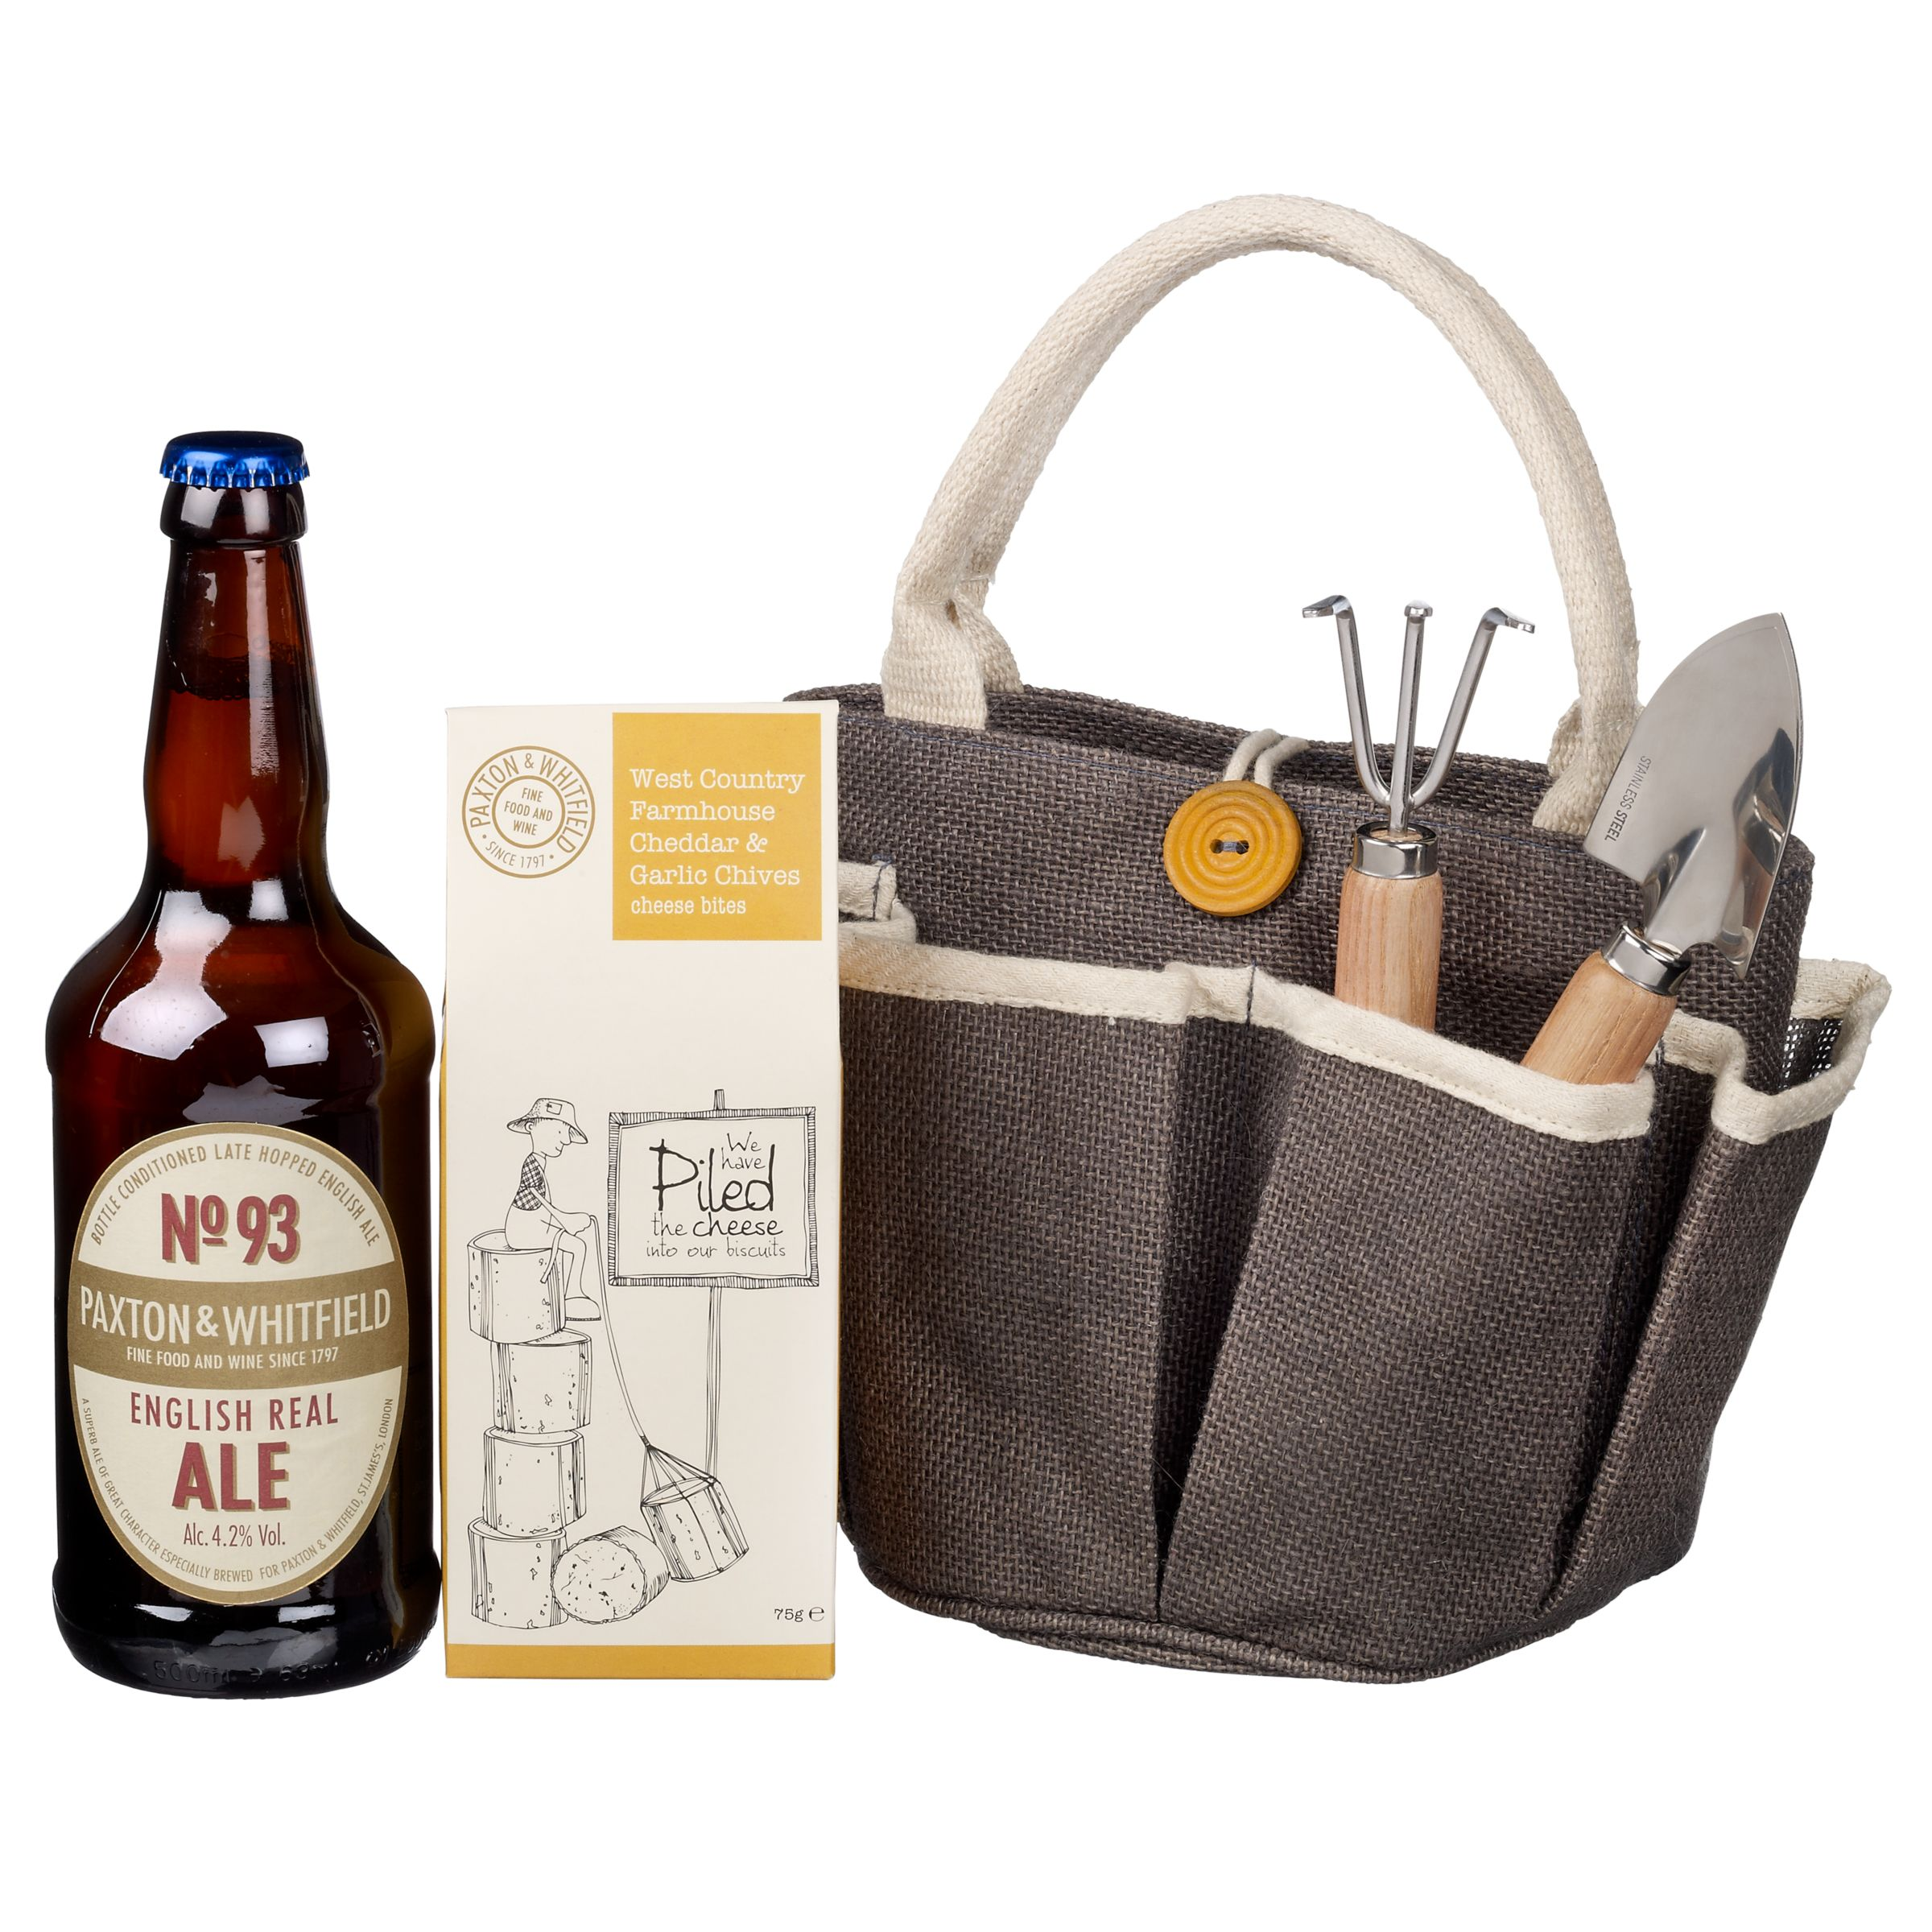 Paxton & Whitfield Gardeners Gift Set